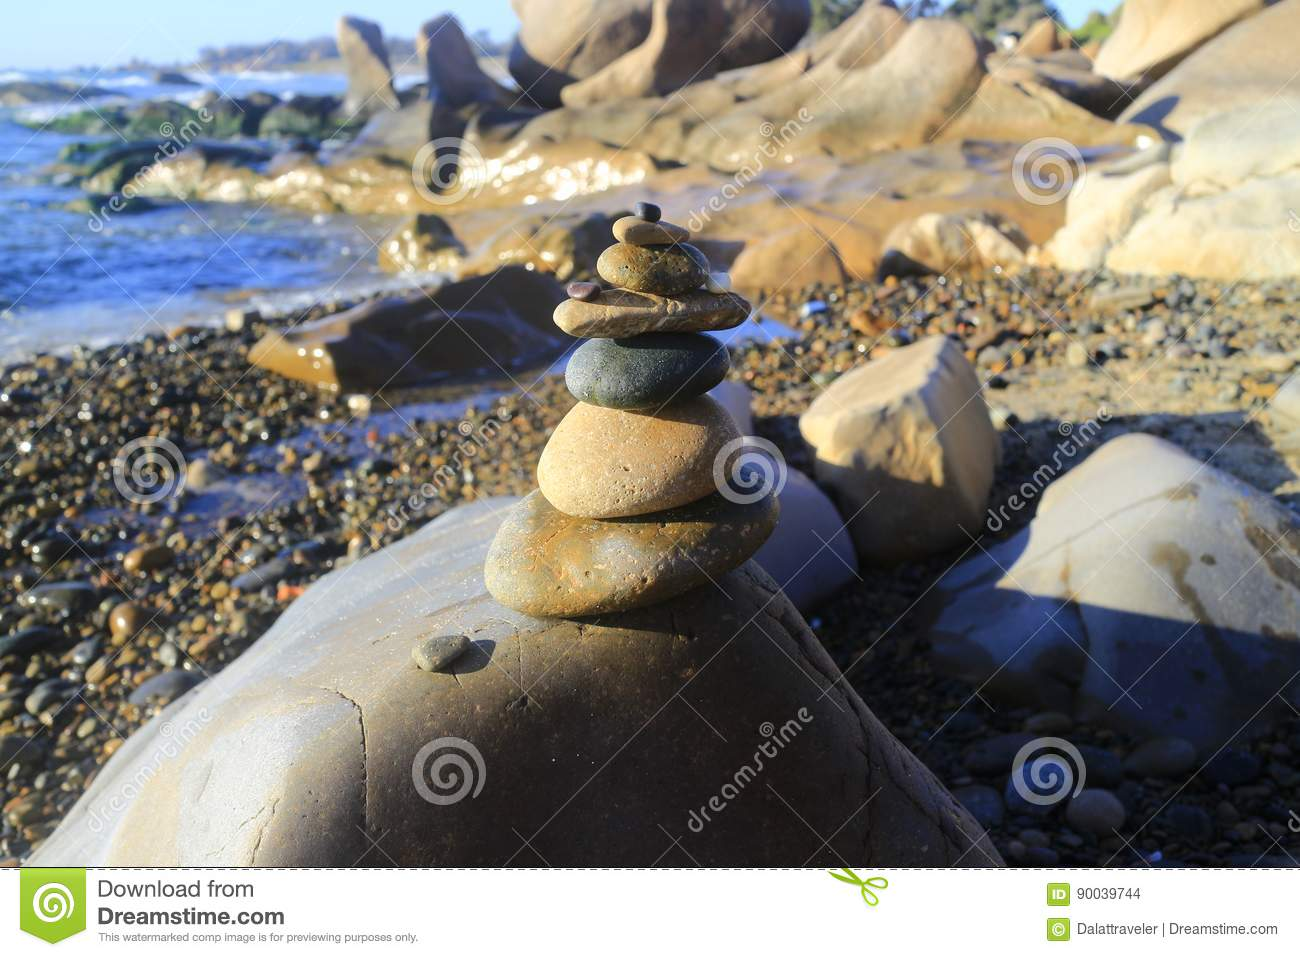 Amazing stack of stones on green moss at seaside beach group of pebble balance on large rock